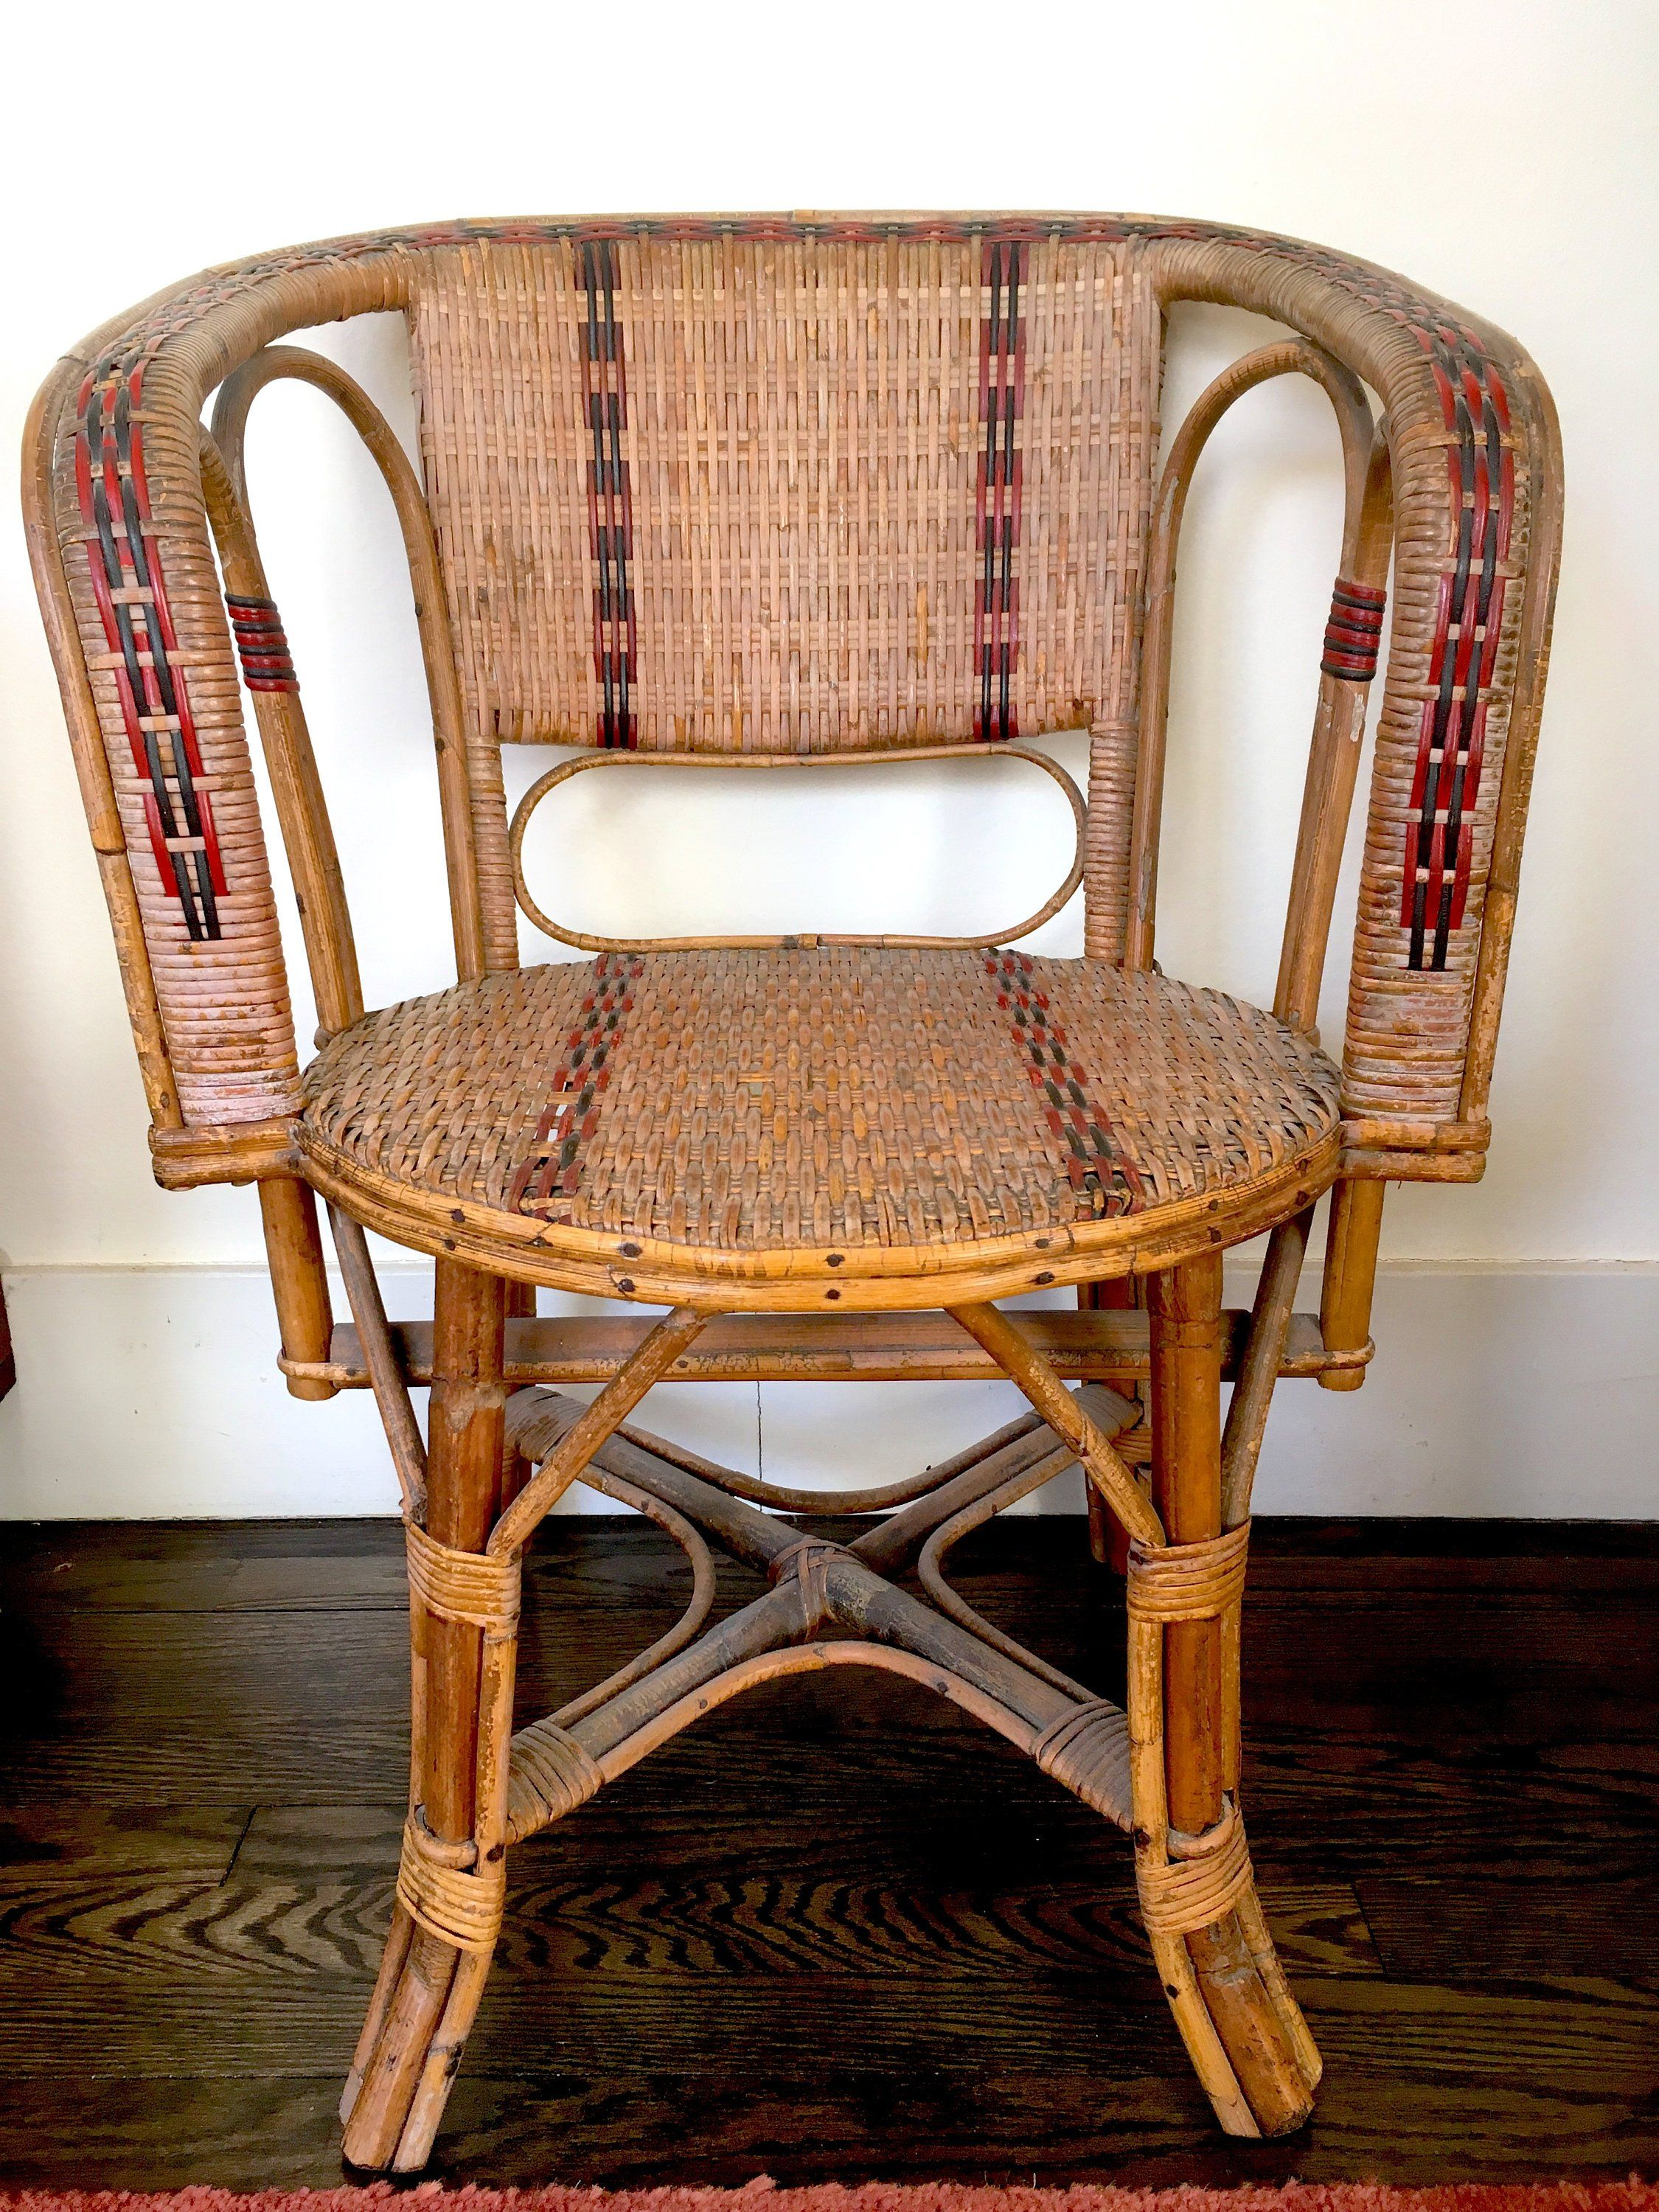 French Bistro Cafe Chairs 1920s Woven Rattan Bamboo French Country Cottage Chic Cafe Chairs Chair